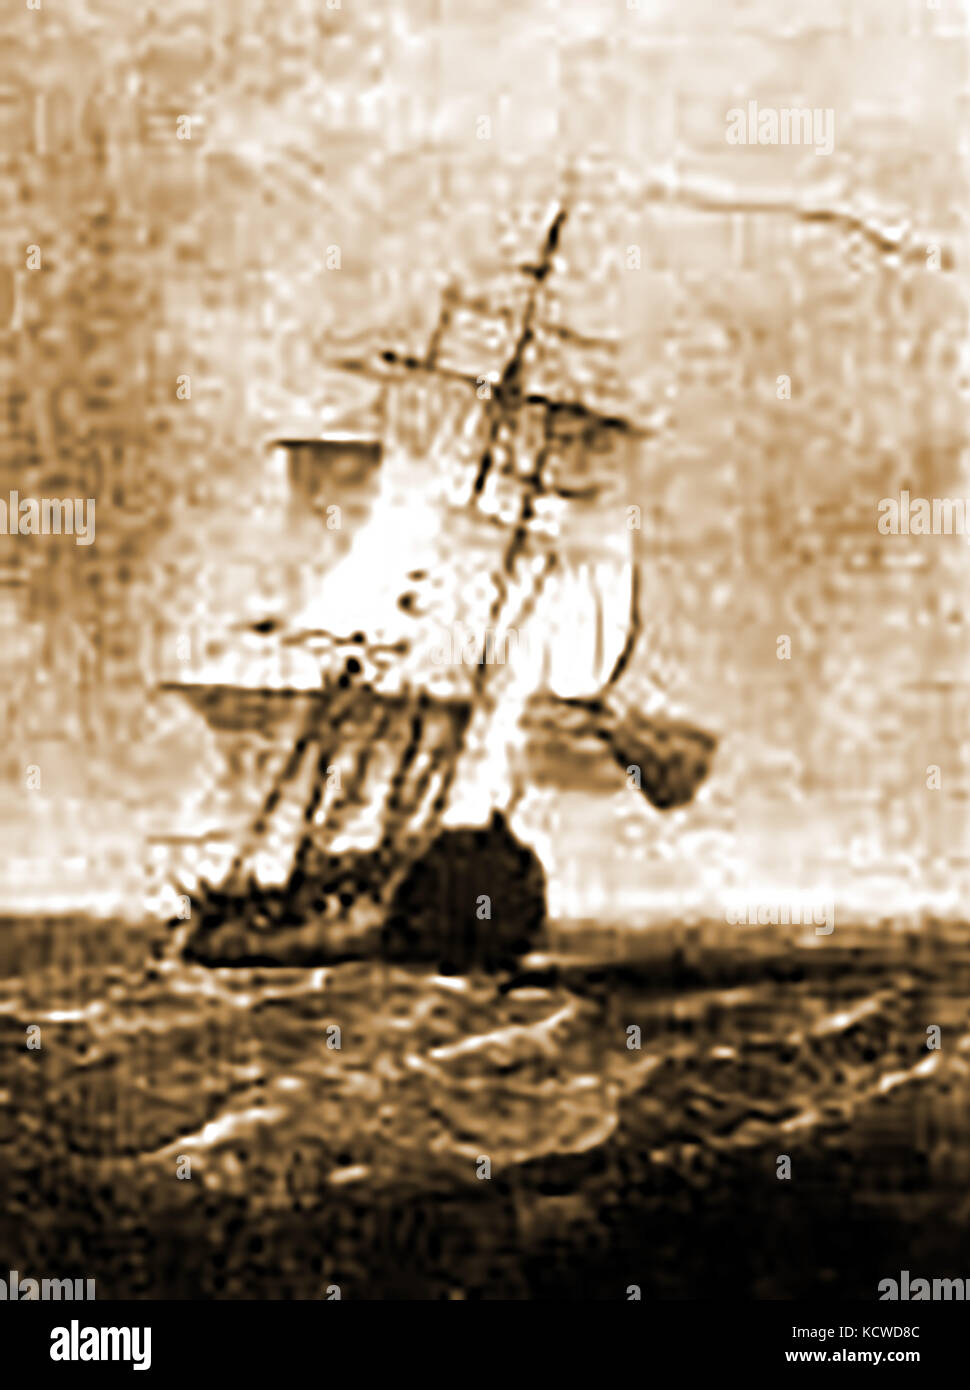 C1750 The Boston ship BETHEL owned by Josiah Quincy and Edward Jackson. Captain was Isaac Freeman - Stock Image